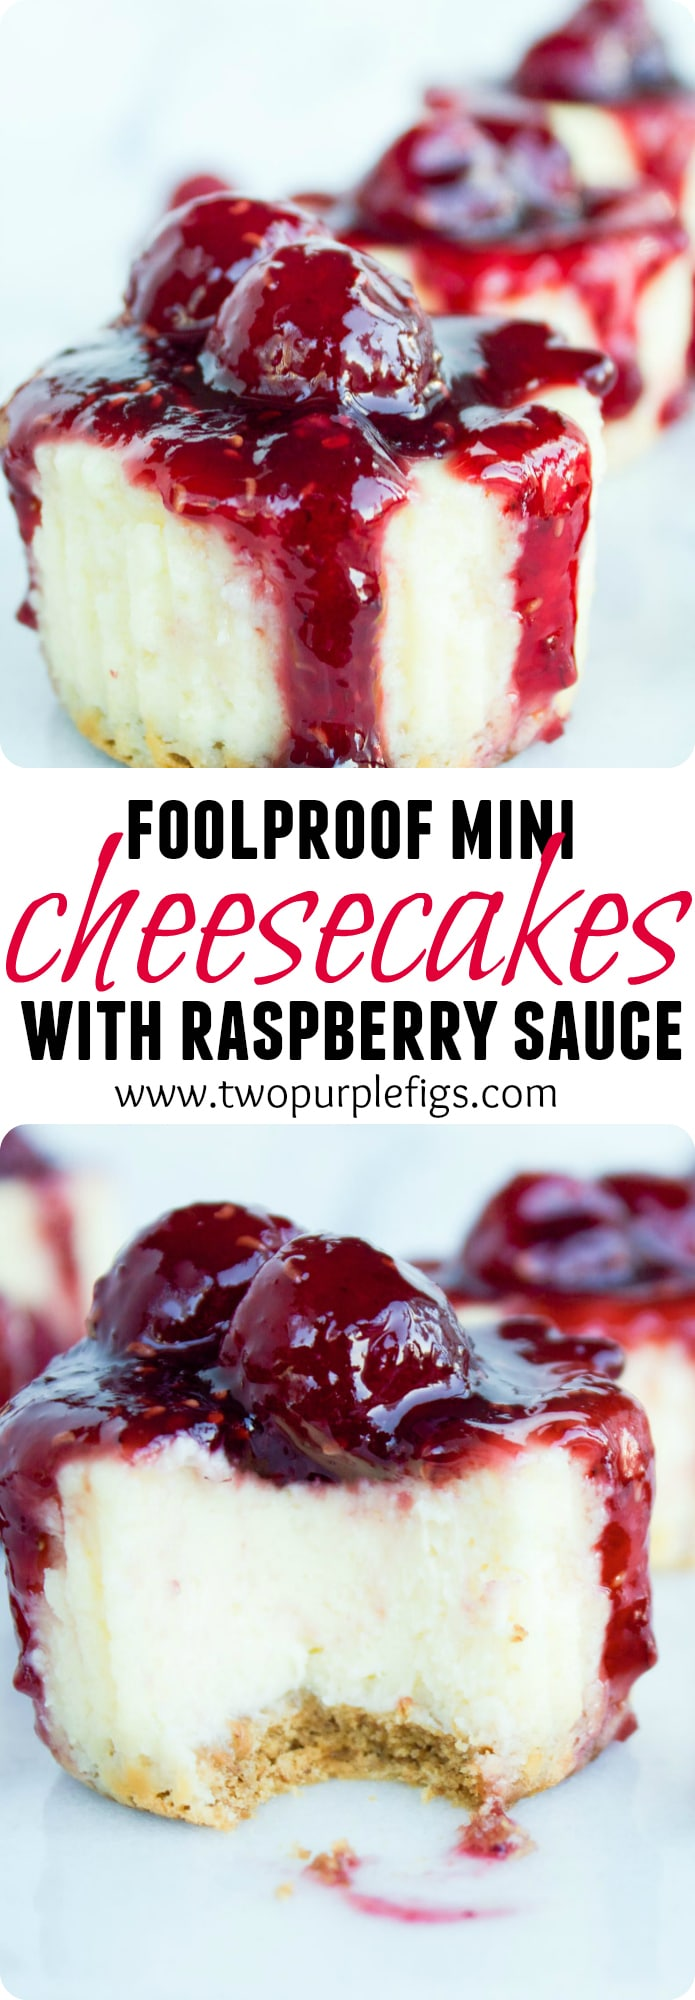 Looking for an easy mini cheesecake recipe? These mini raspberry cheesecakes with a simple cookie bottom and a homemade 1-minute raspberry sauce are the ticket!#minicheesecakes, #raspberrycheesecake